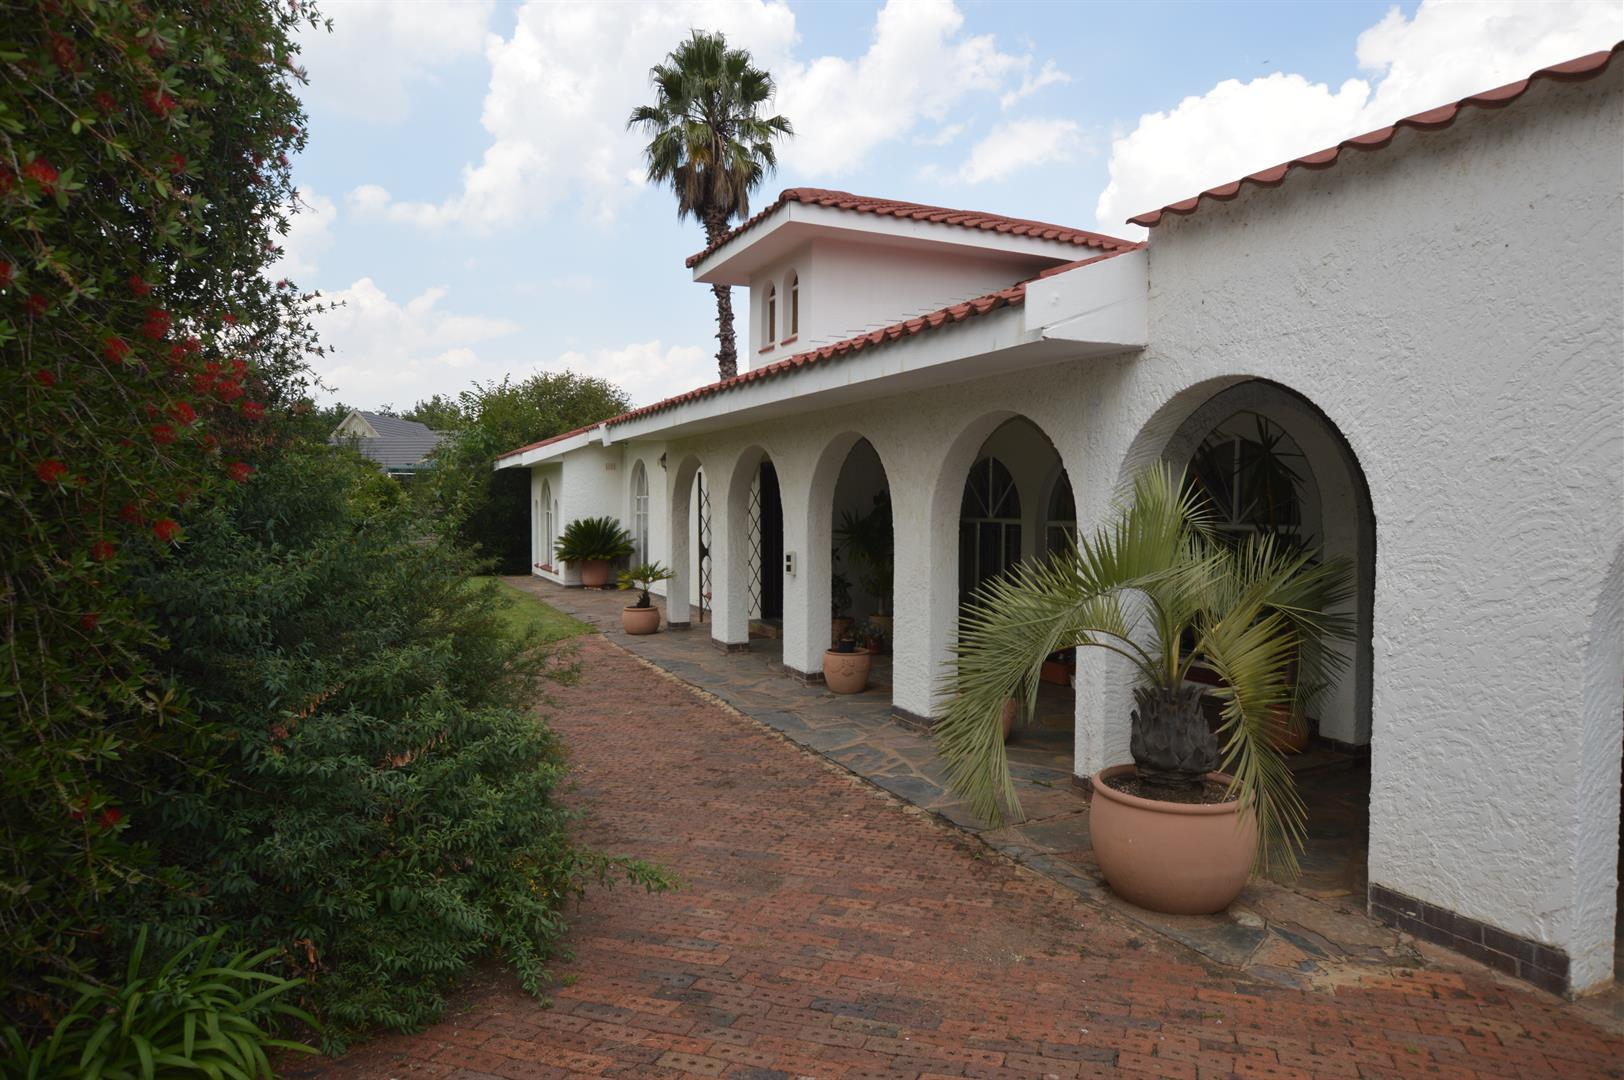 Vanderbijlpark Sw 5 property for sale. Ref No: 13443705. Picture no 1